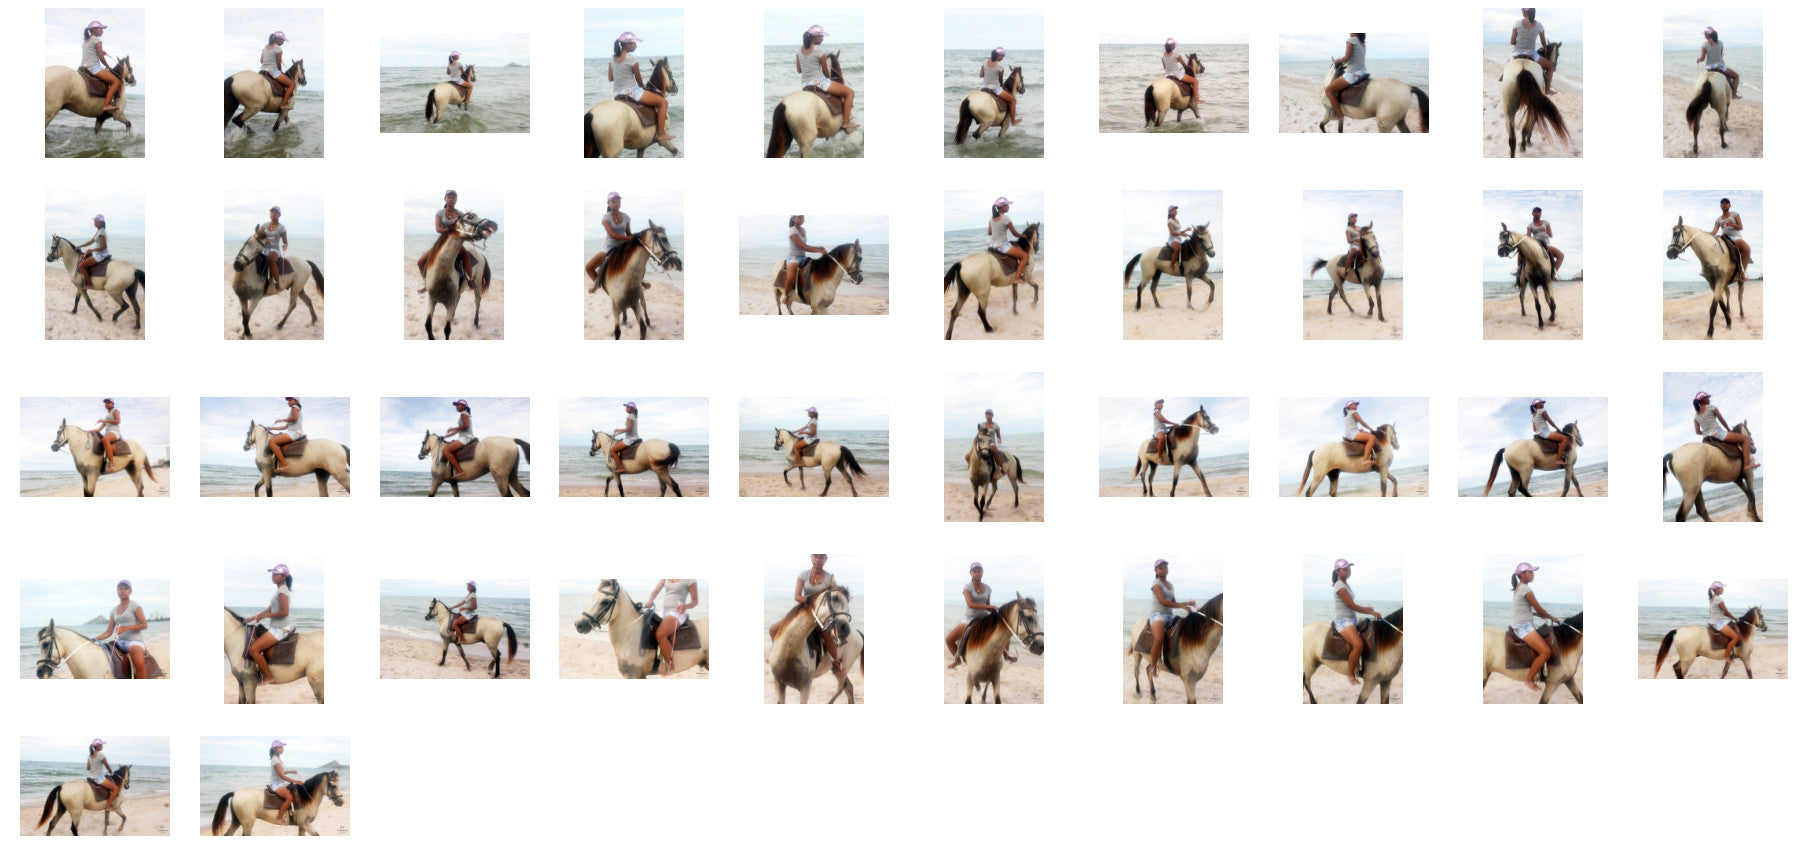 Titaporn Riding with Saddle on Buckskin Horse, Part 9 - Riding.Vision